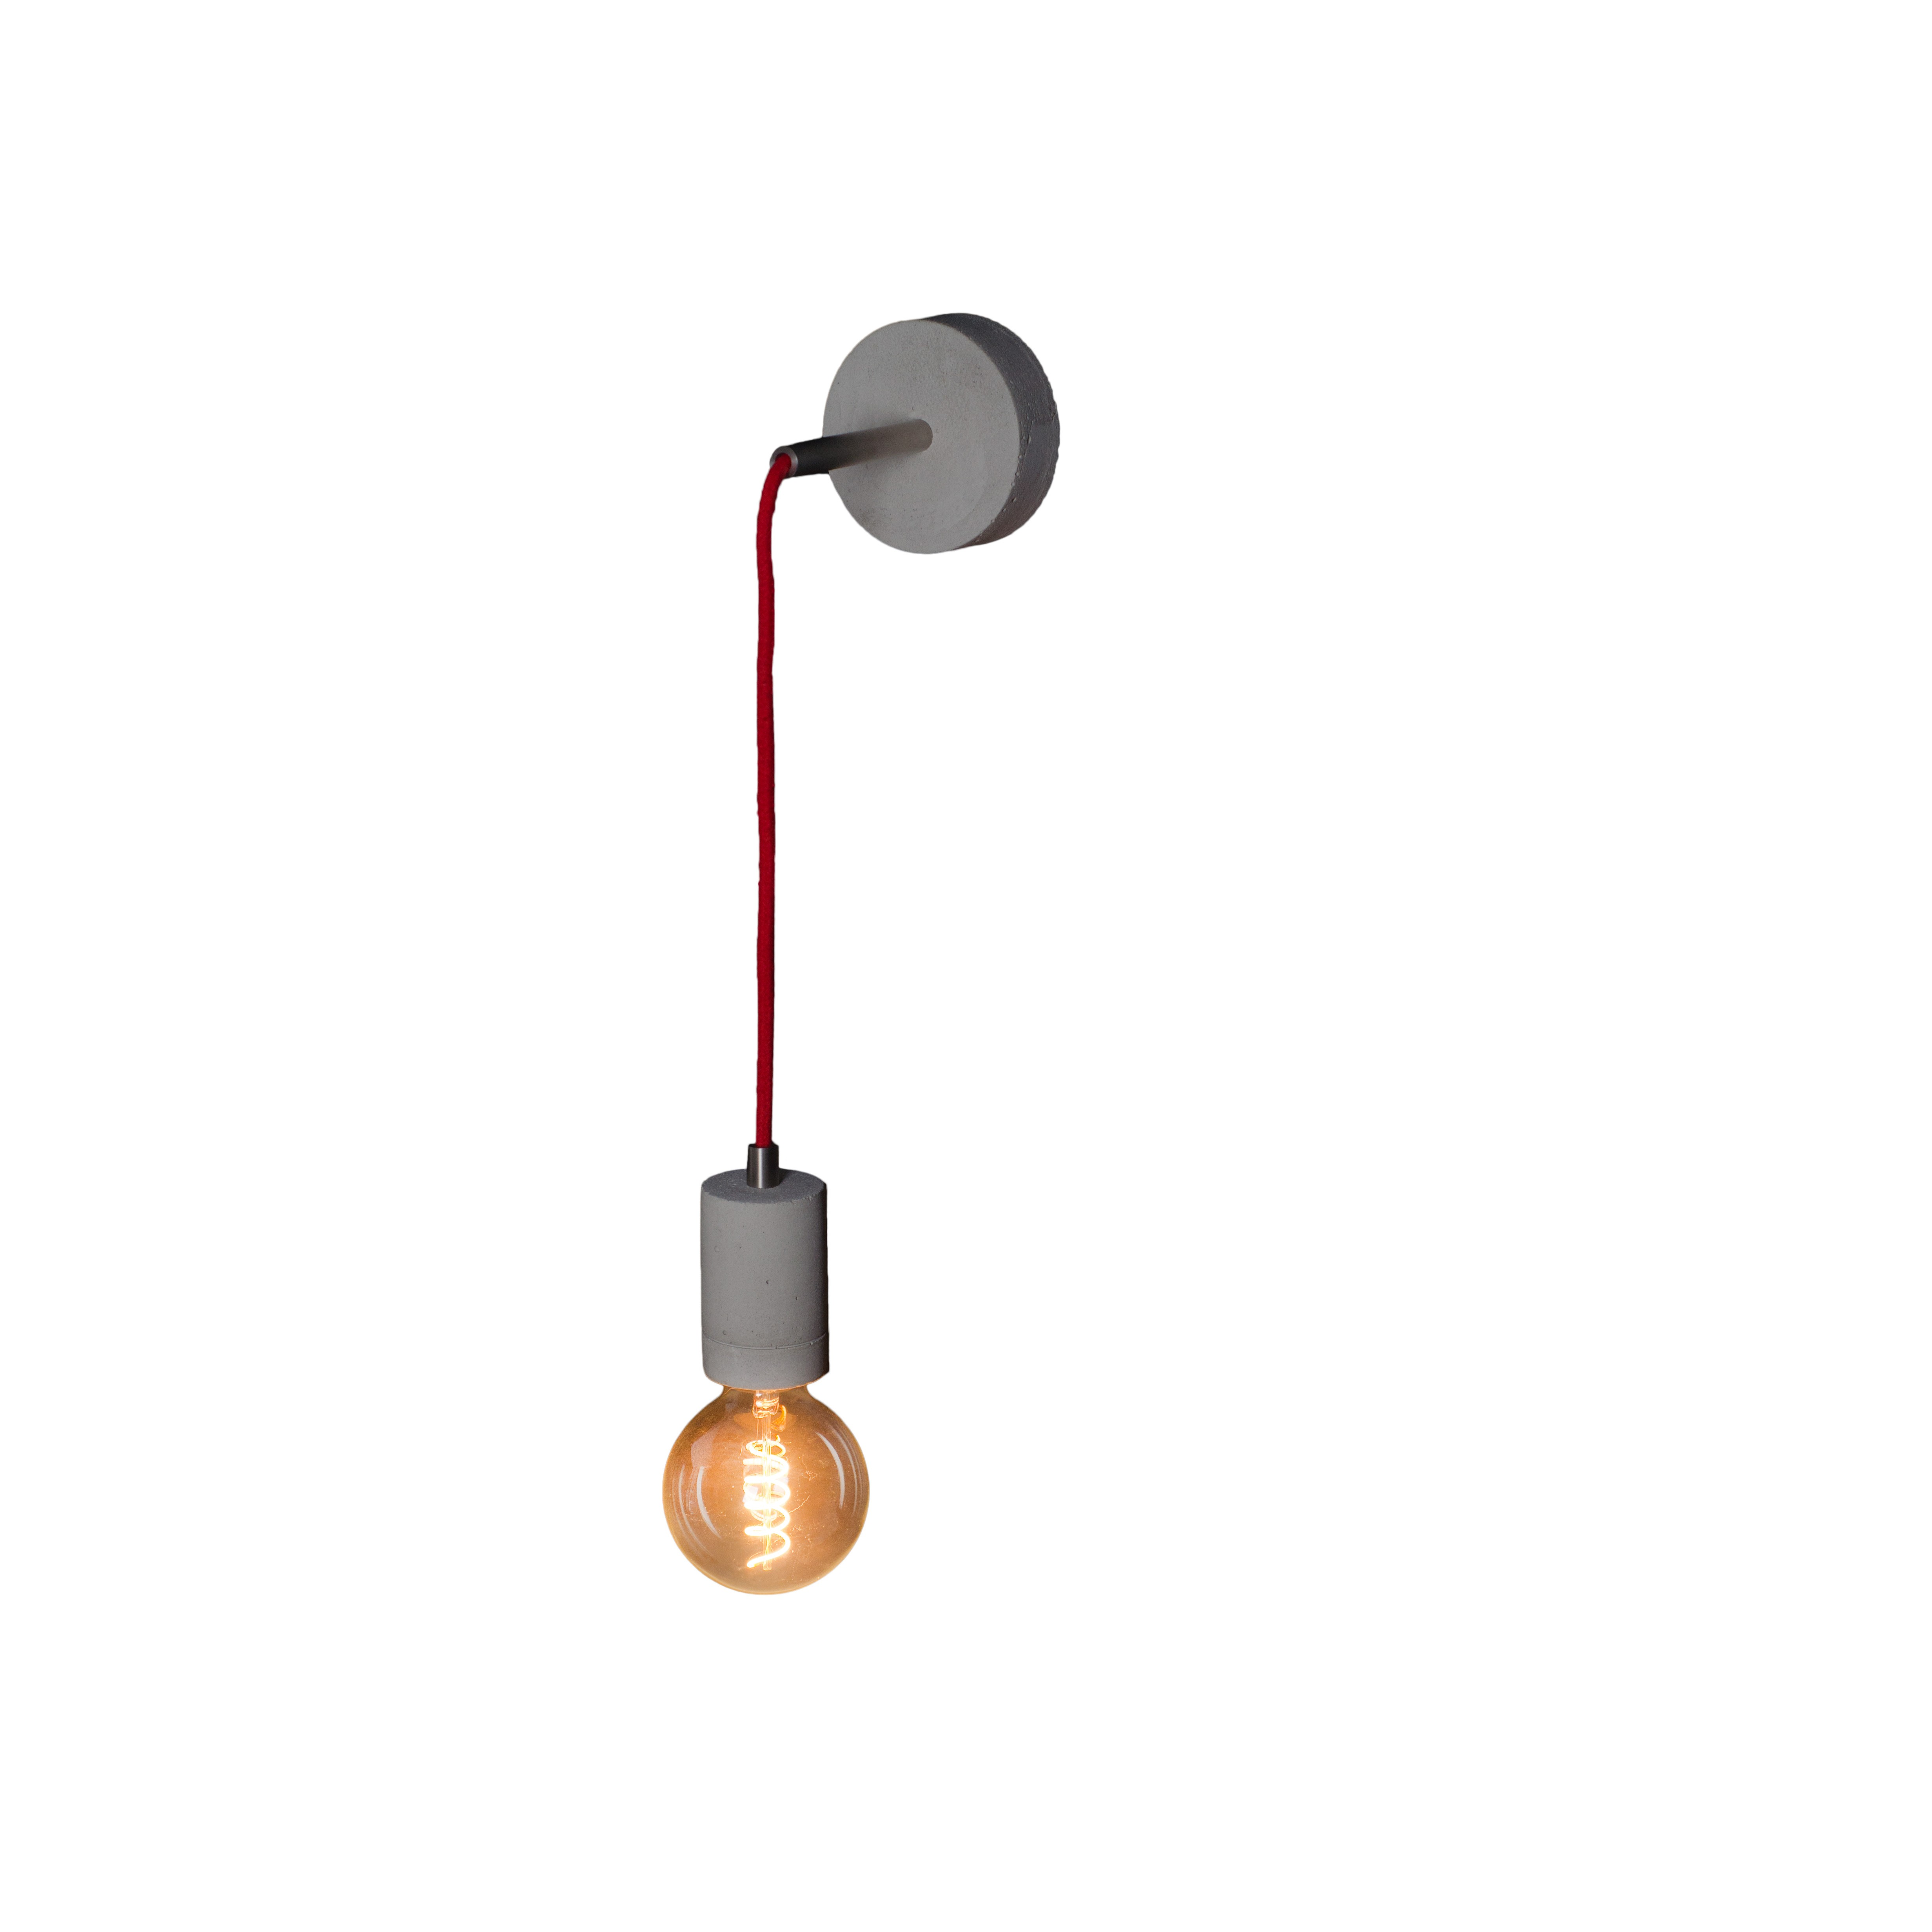 Concrete wall lamp wall lamp Kalla Wall STEEL LOFTLIGHT